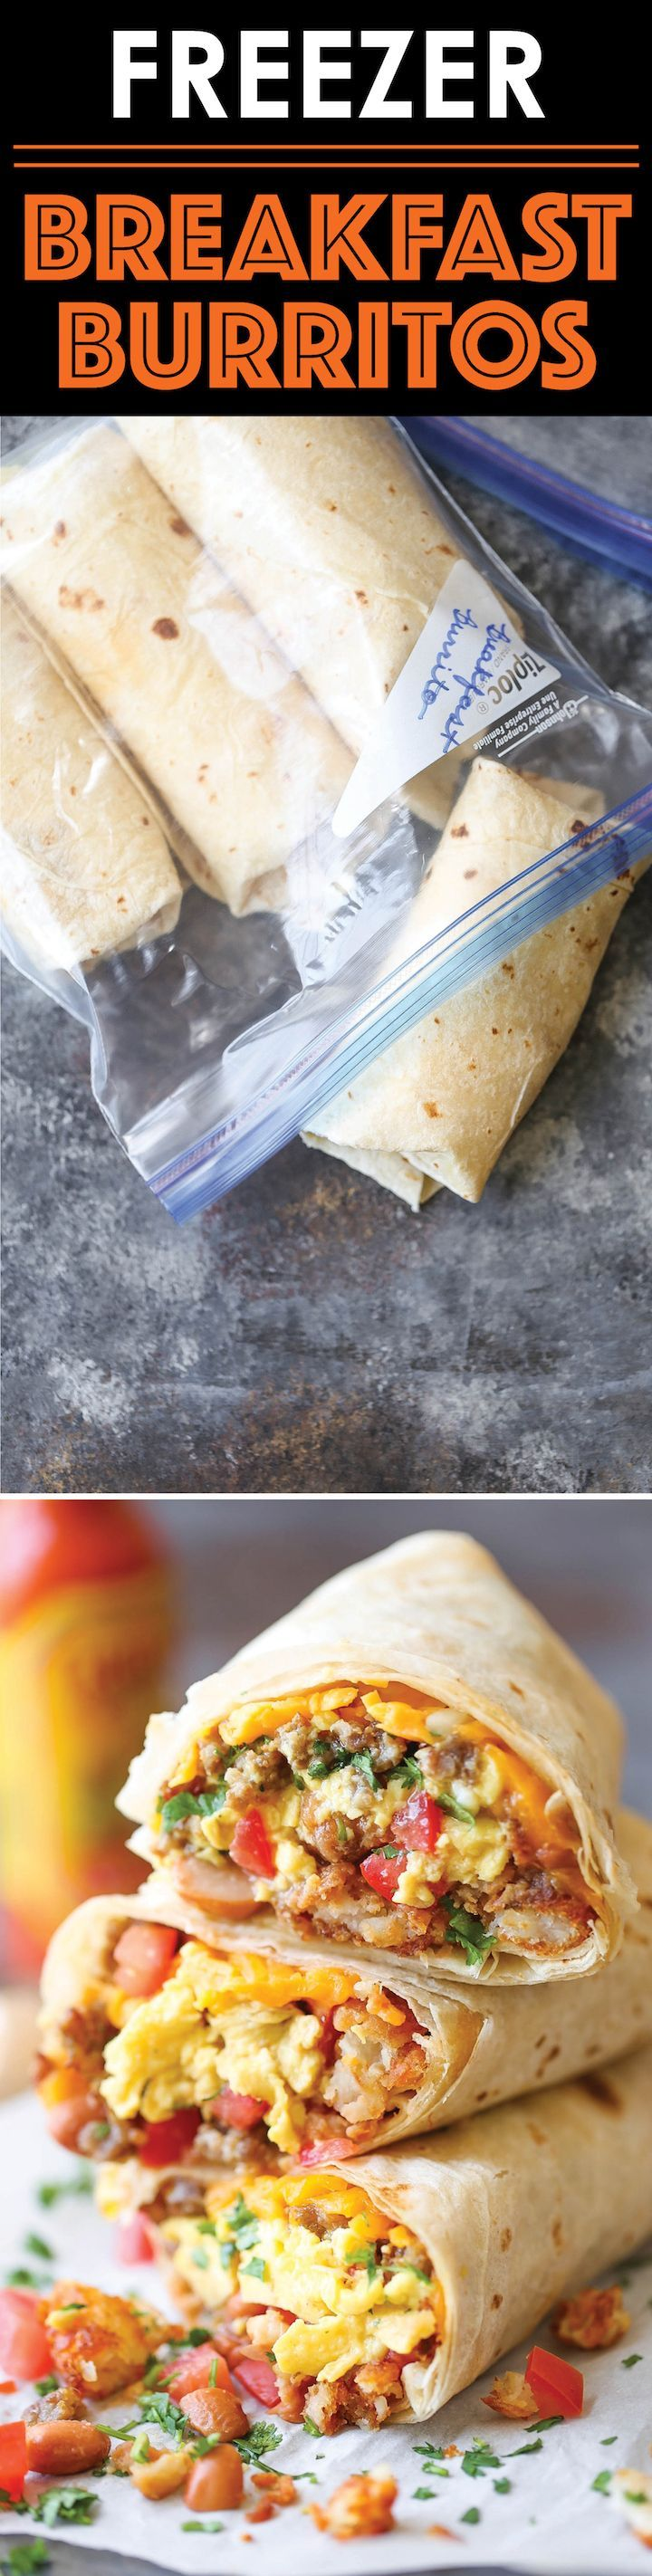 Freezer Breakfast Burritos - Meal prep over the weekend for the best burritos during the week. Loaded with tater tots, eggs, beans and cheese, of course!! http://eatdojo.com/healthy-breakfast-tips-easy-fat-burning/ http://eatdojo.com/healthy-breakfast-tips-easy-fat-burning/